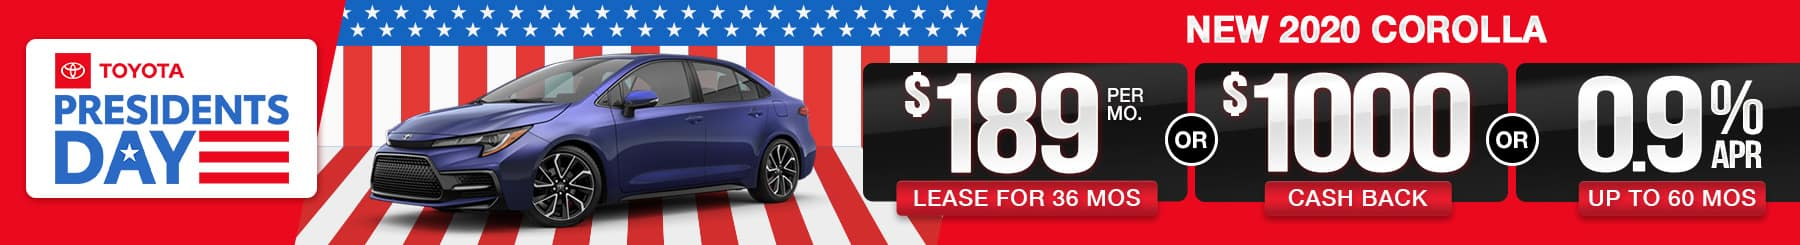 2020 Corolla Lease or Finance Offers